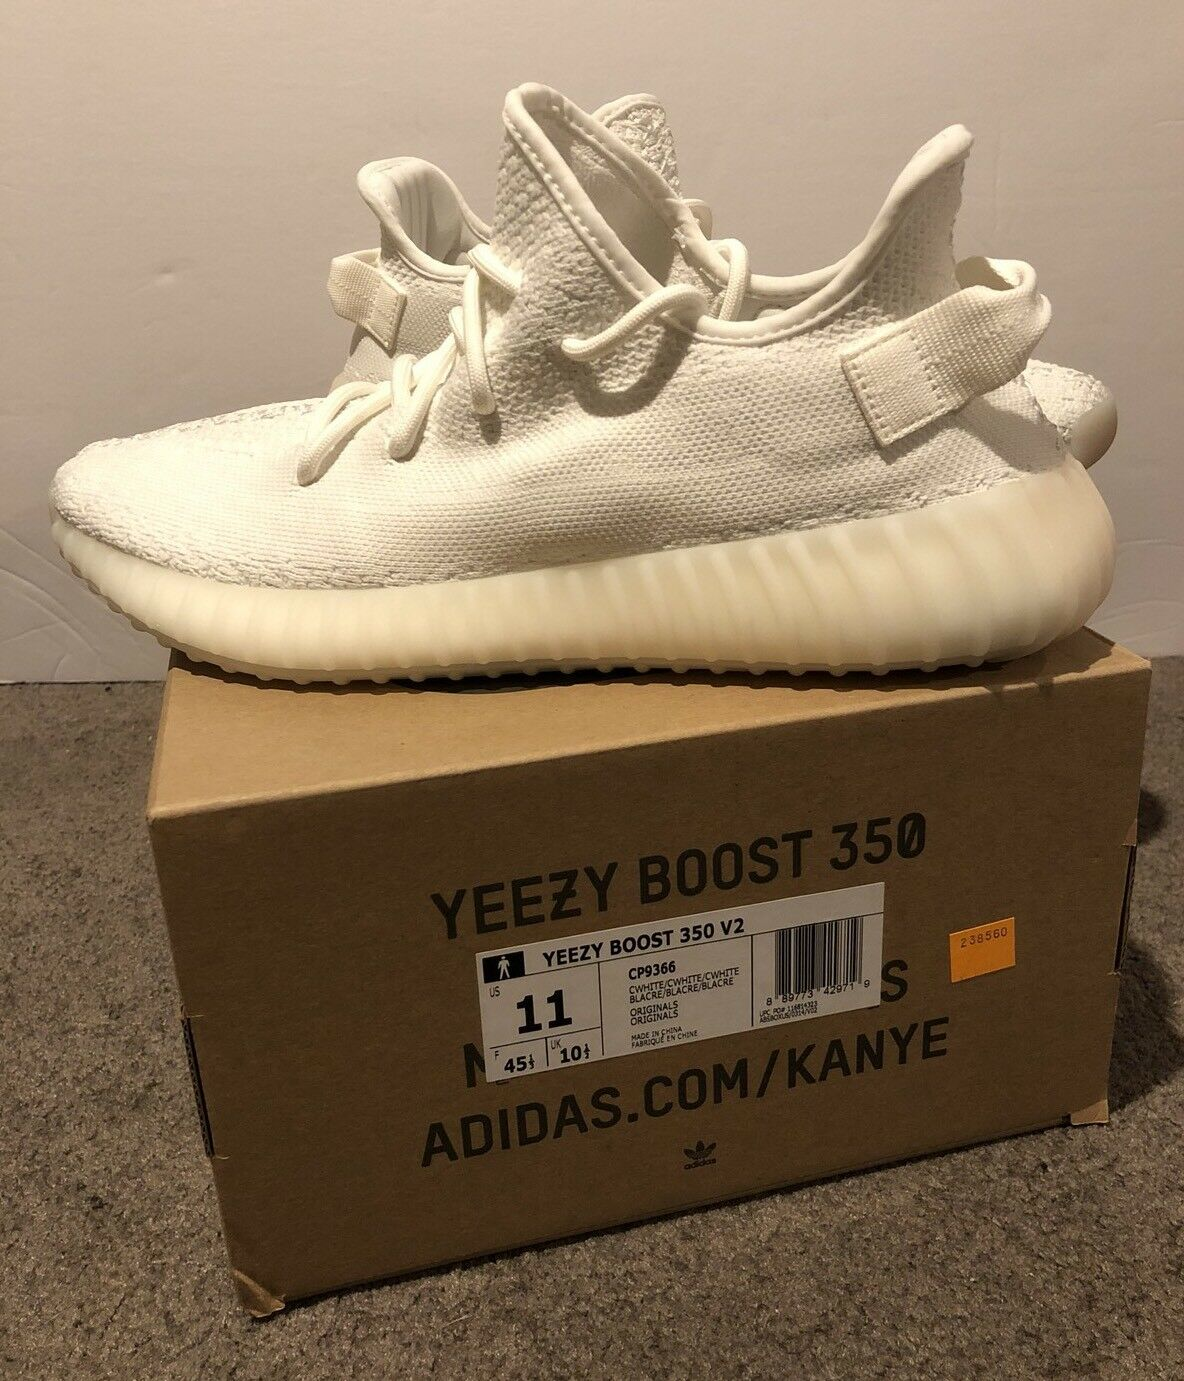 Adidas Yeezy Boost 350 V2 Cream White Size 11 NEW 100% Authentic FIRST RELEASE